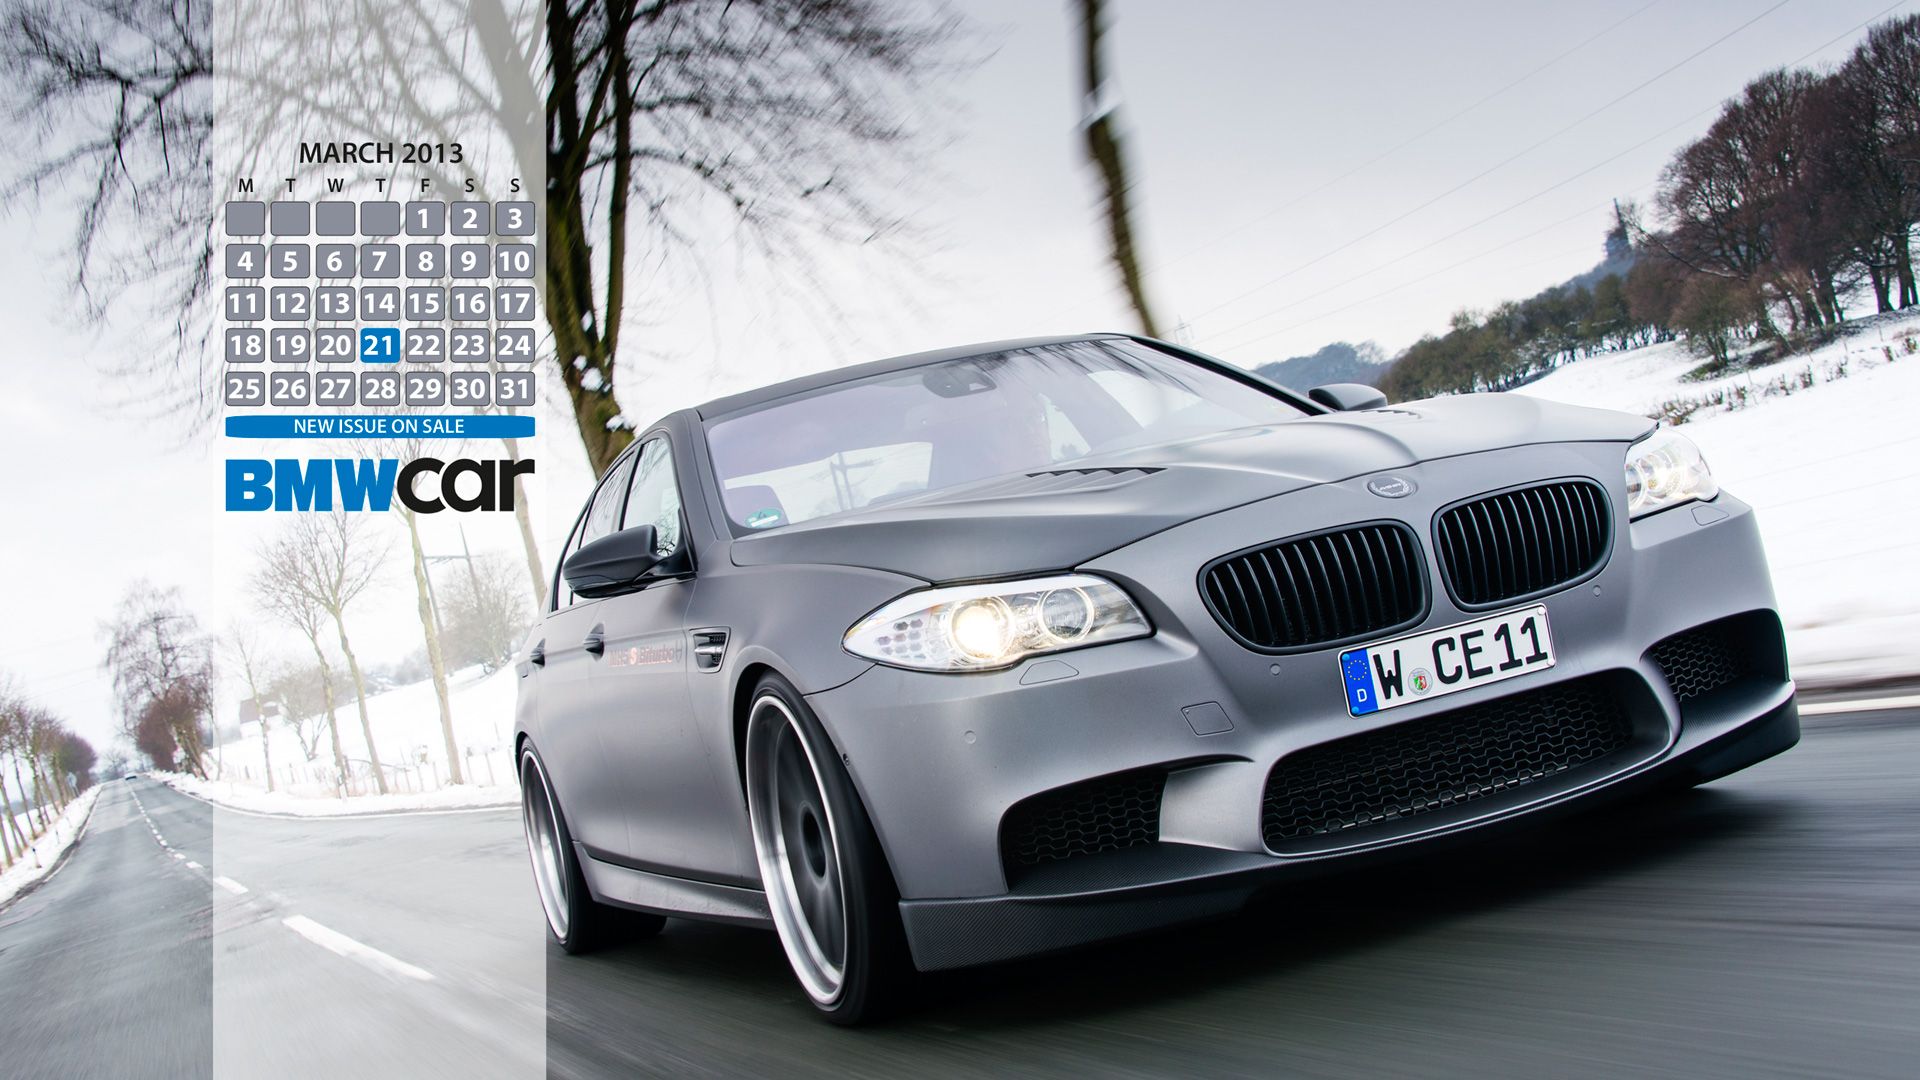 The Bmw Car Magazine Desktop Calendar Wallpapers Are Here